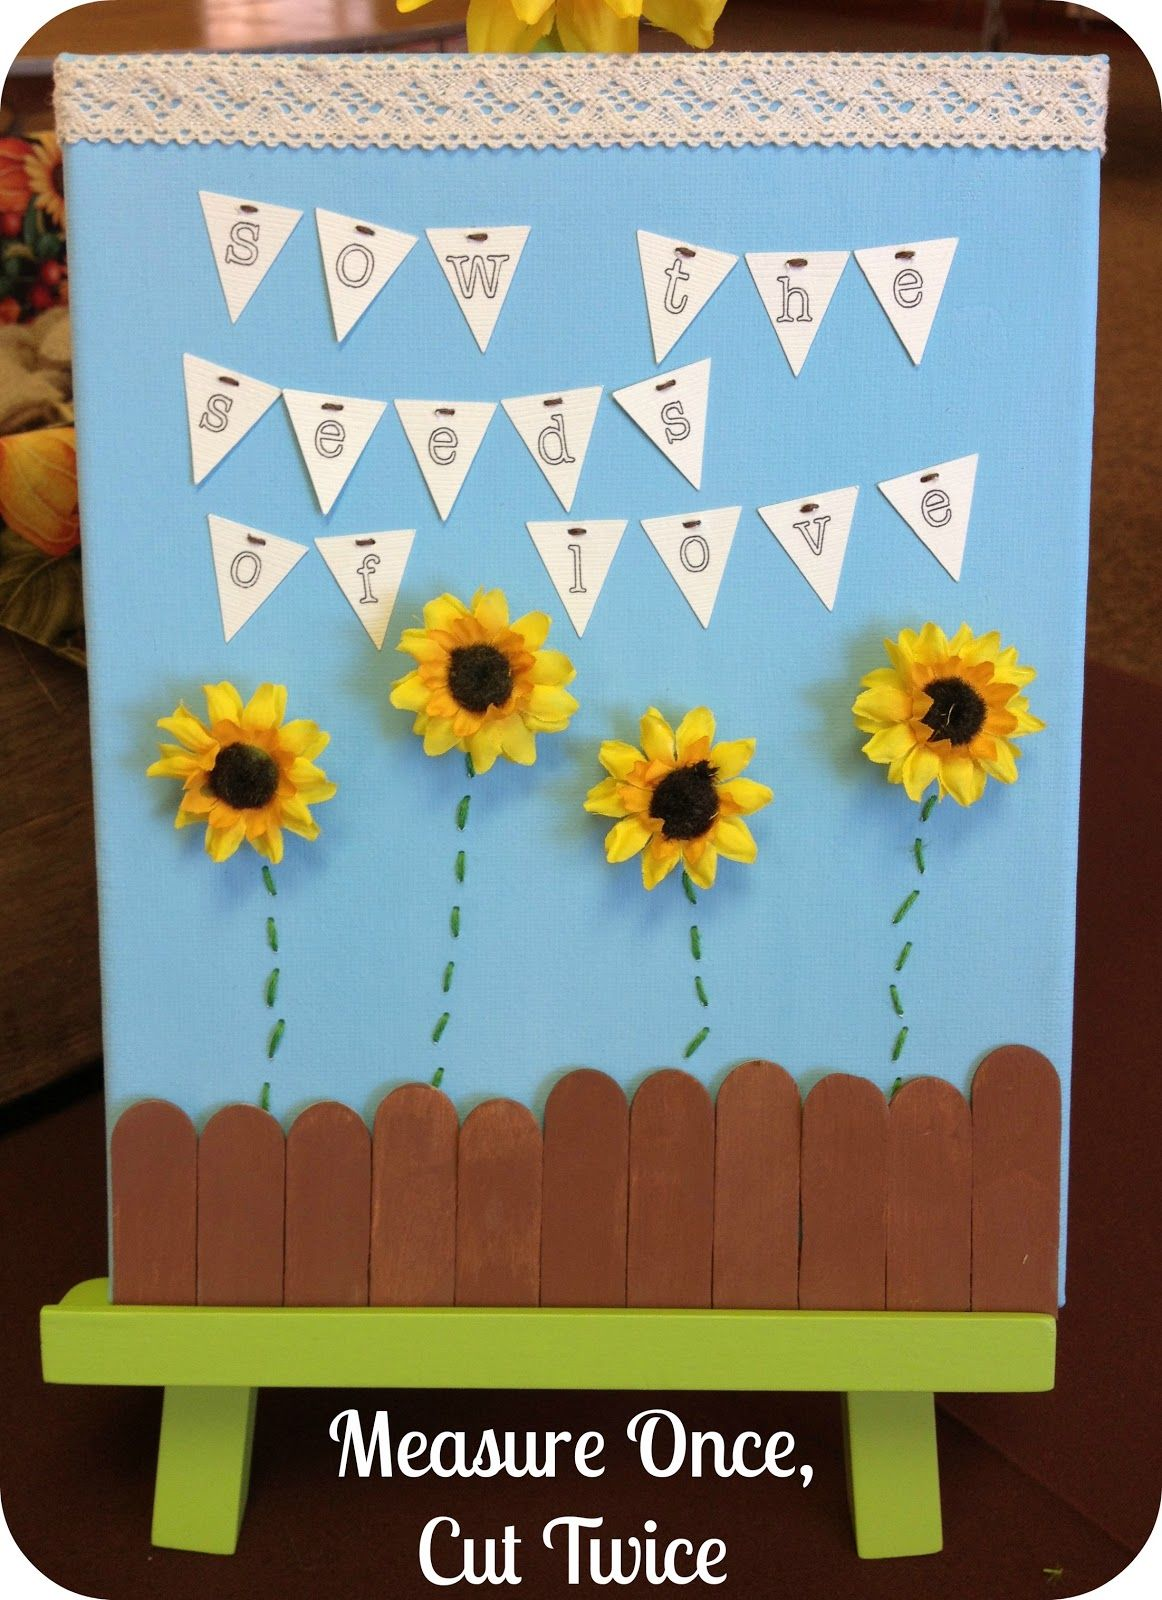 Google themes twice - Measure Once Cut Twice Sunflower Theme Sow The Seeds Of